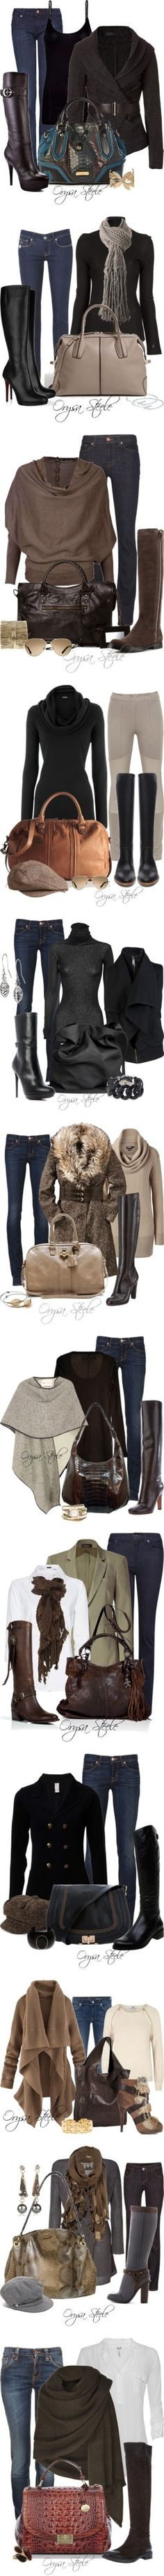 Fall outfits. by angie rule